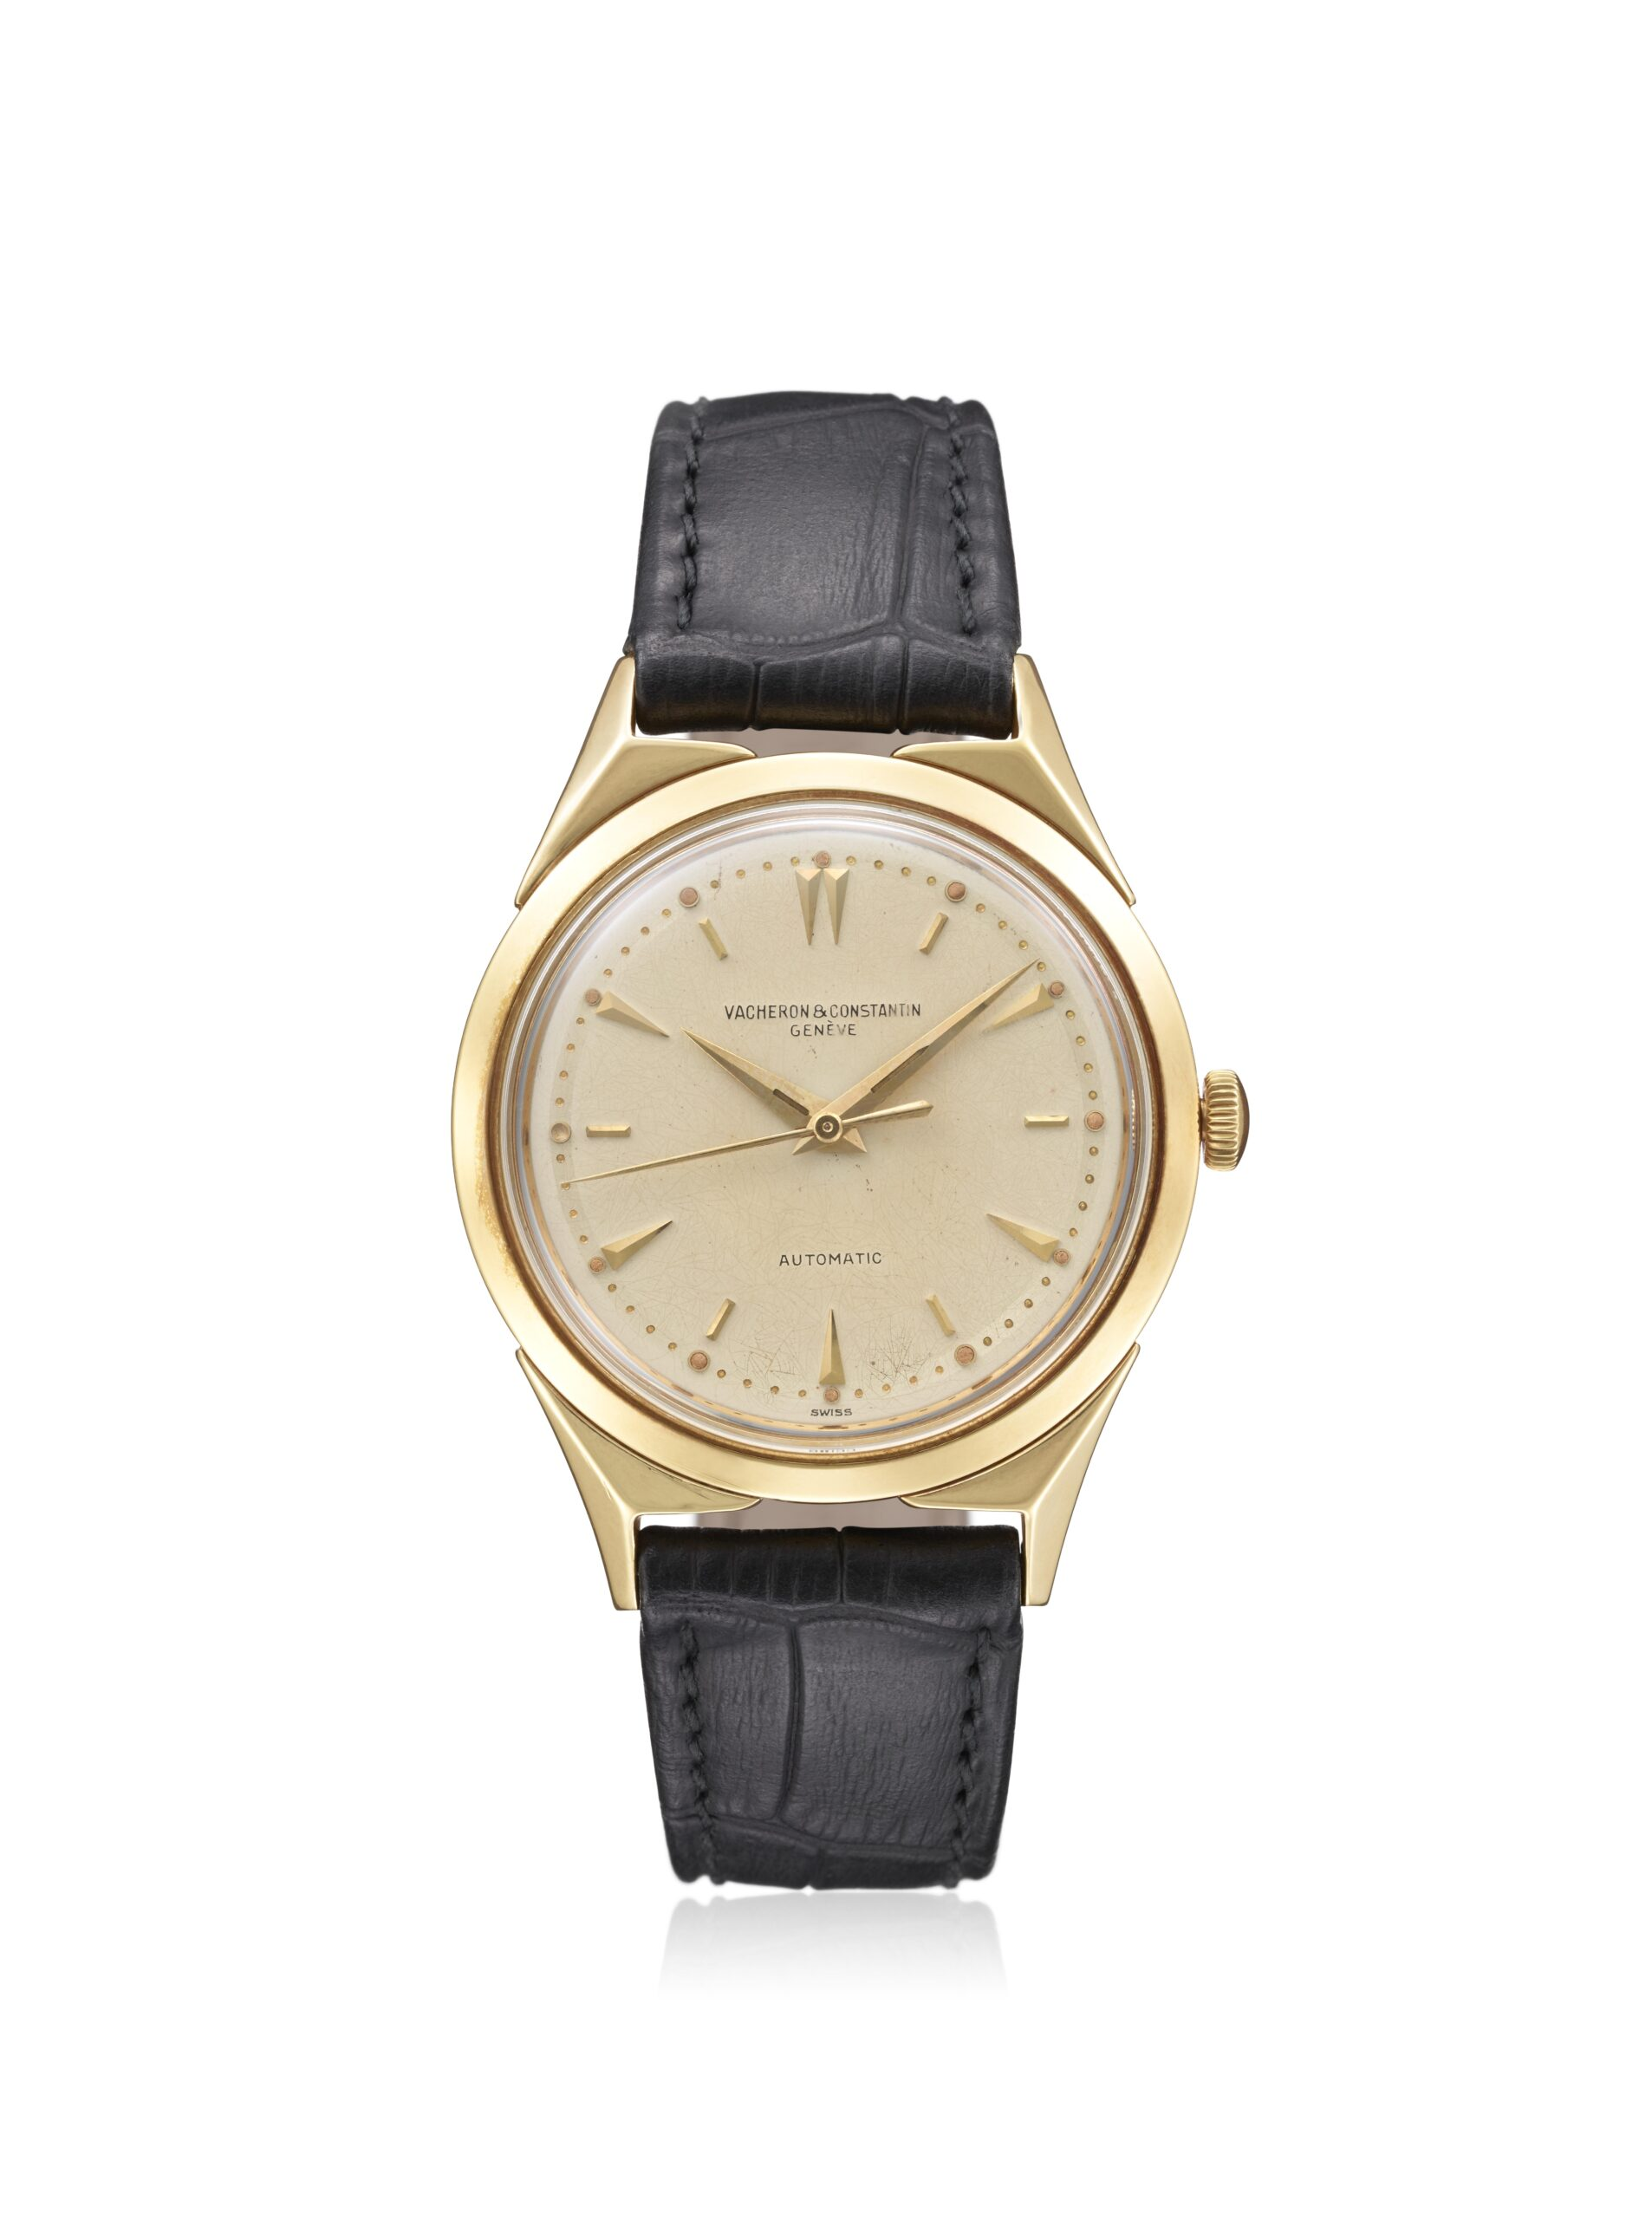 Vacheron Constantin Reference 6073 dating from 1956